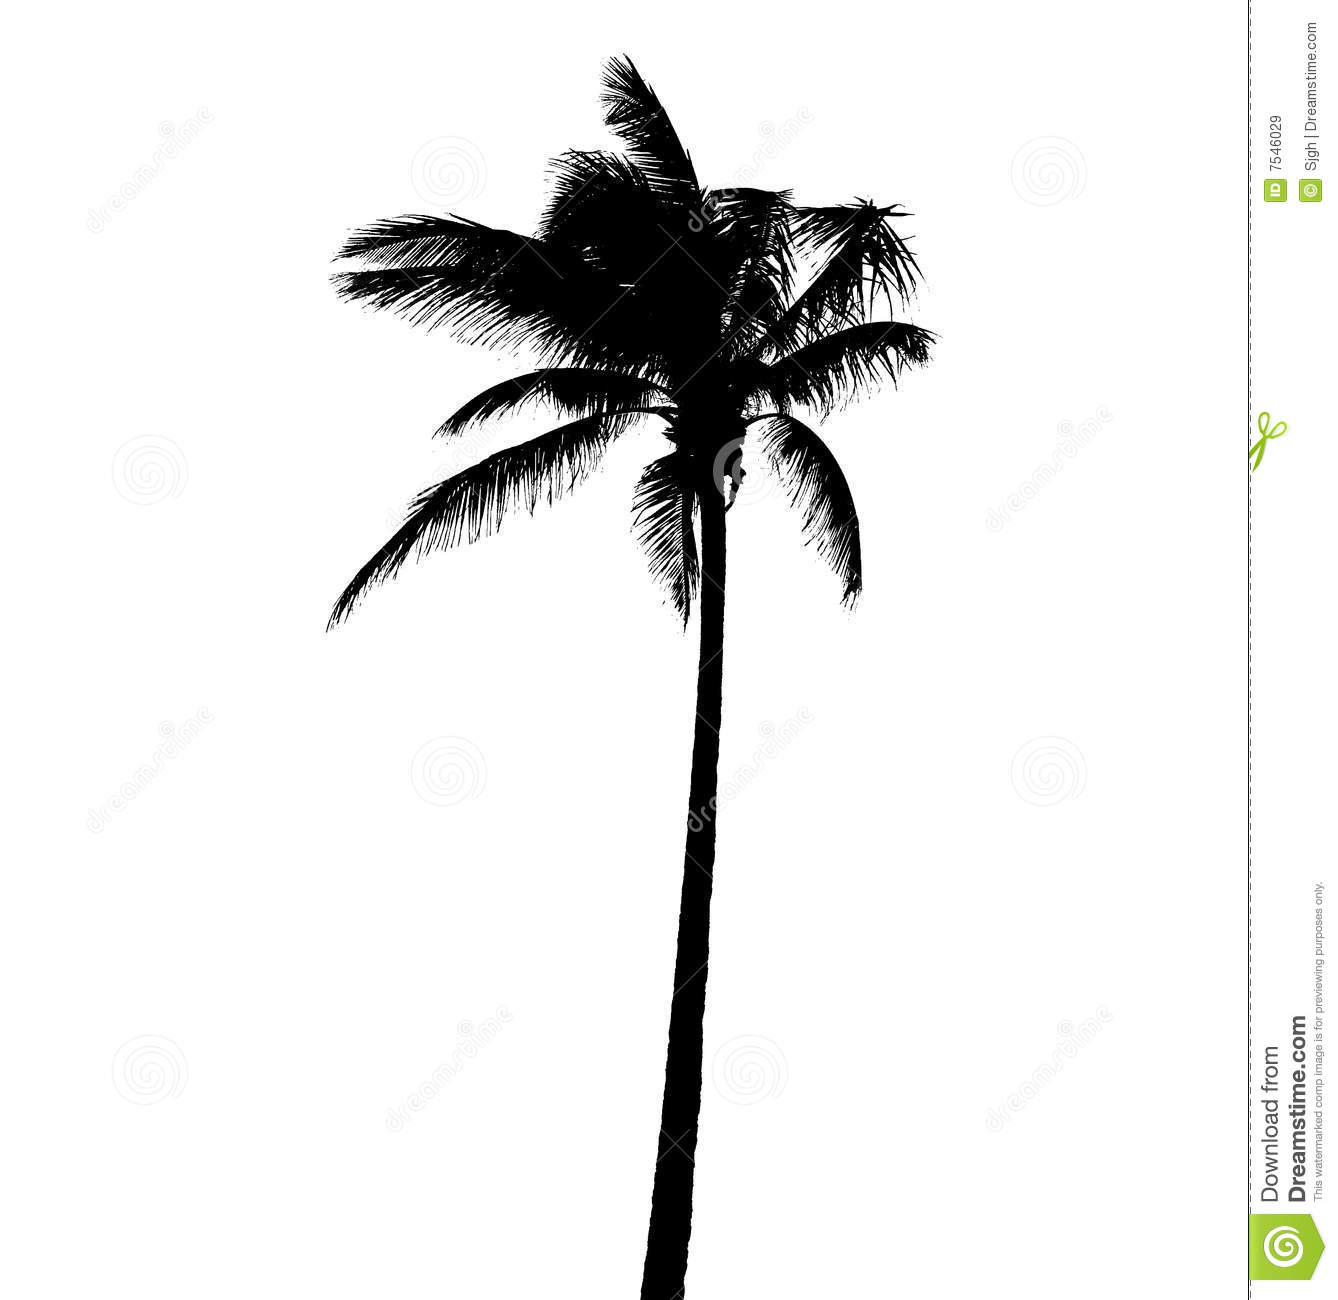 palm tree stock image image of outdoor plant nature 7546029